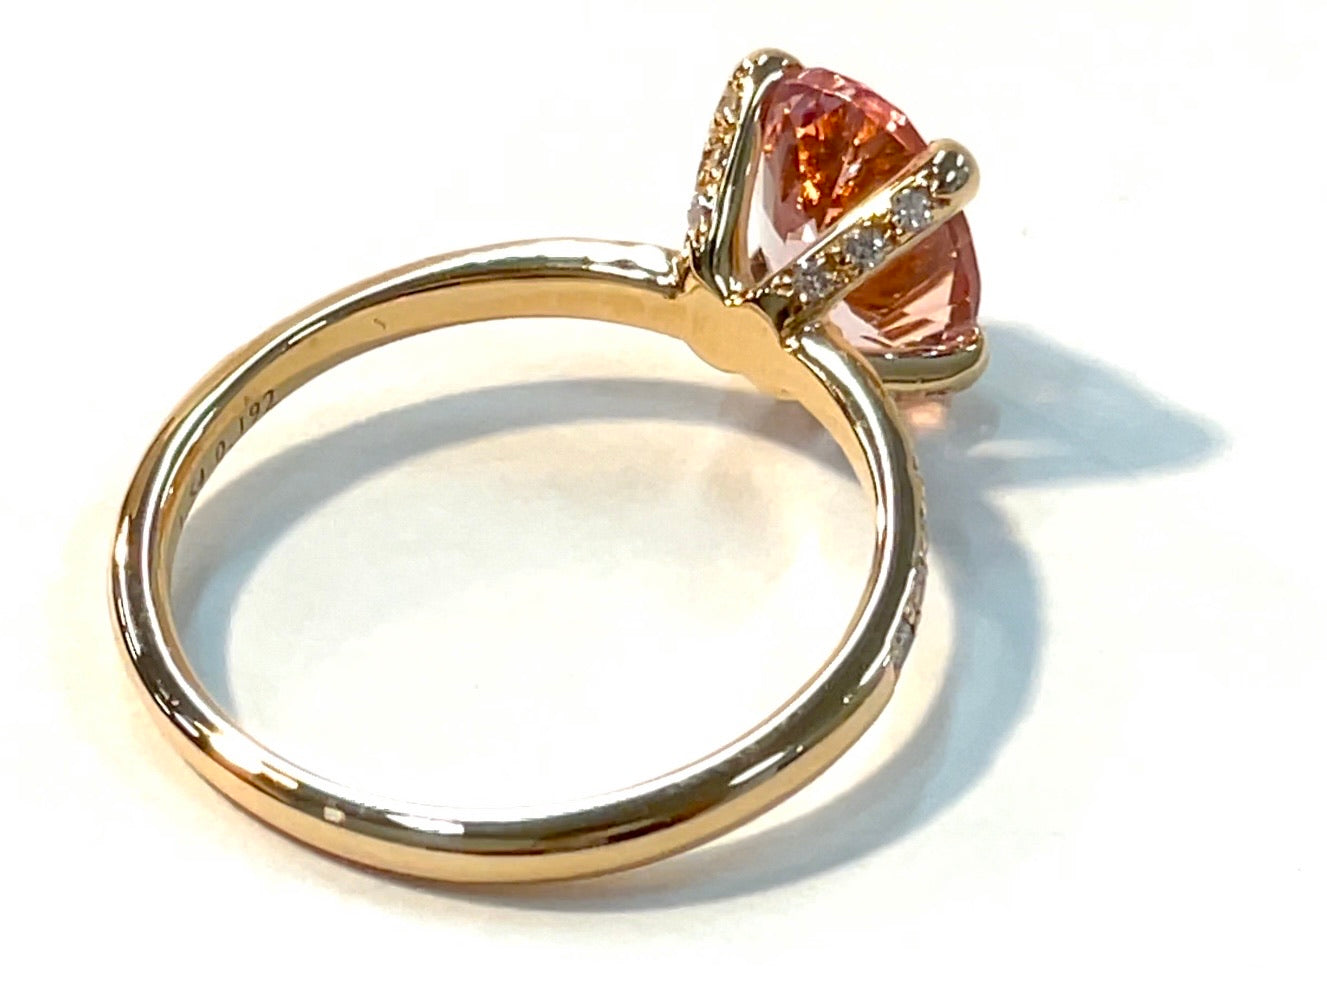 【現在庫】18KPG MORGANITE DIAMONDS XRING POV9 D-26 - モルガナイト&ザ・セレクト ~ MORGANITE N THE SELECTS